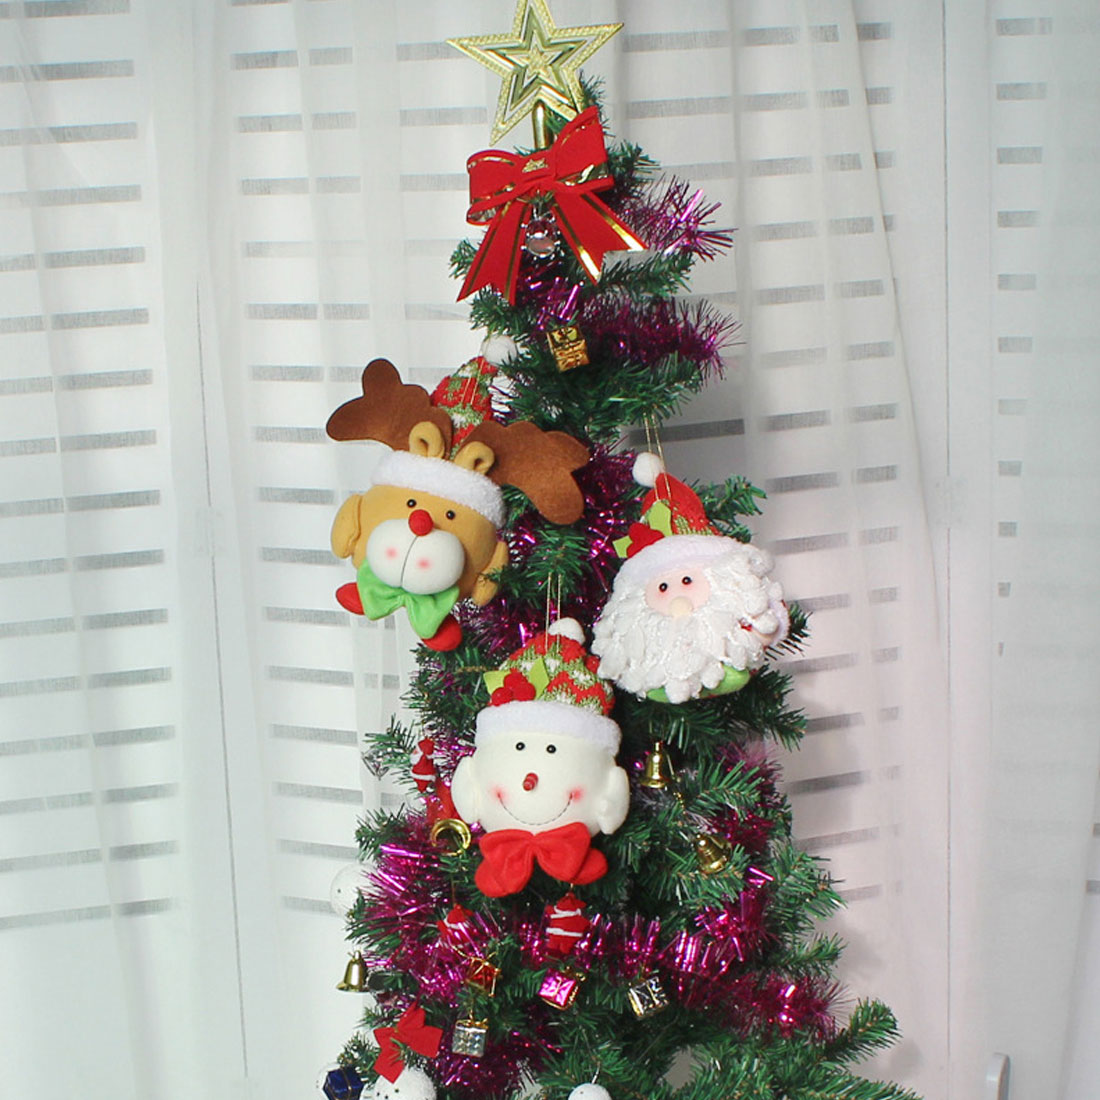 Cool Snowman Decoration Ornaments For Christmas Tree: Aliexpress.com : Buy 2018 Merry Christmas Tree Hanging